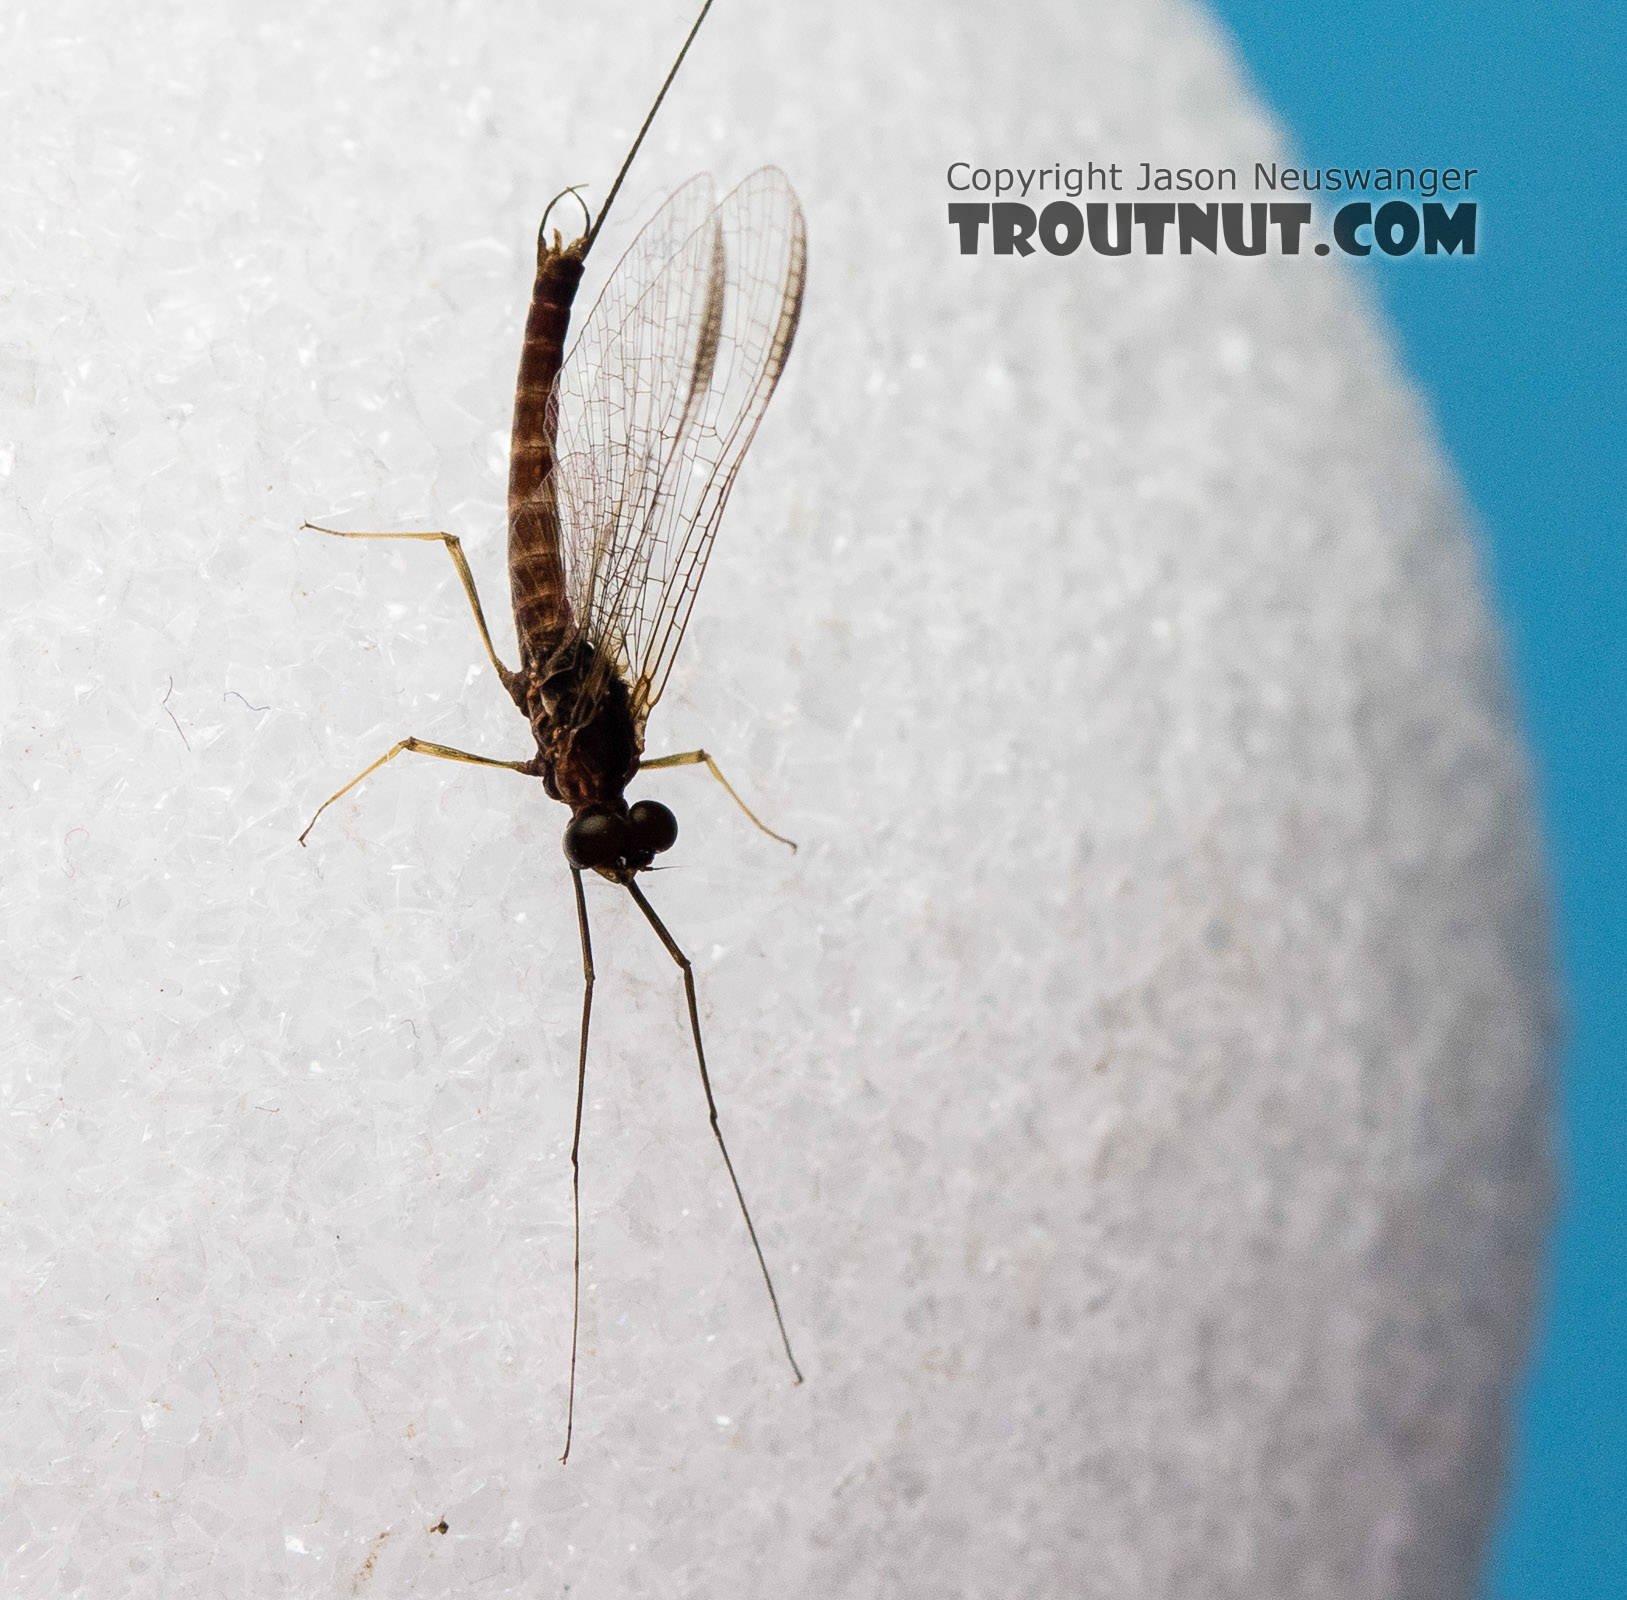 Male Rhithrogena morrisoni (Western March Brown) Mayfly Spinner from the South Fork Snoqualmie River in Washington